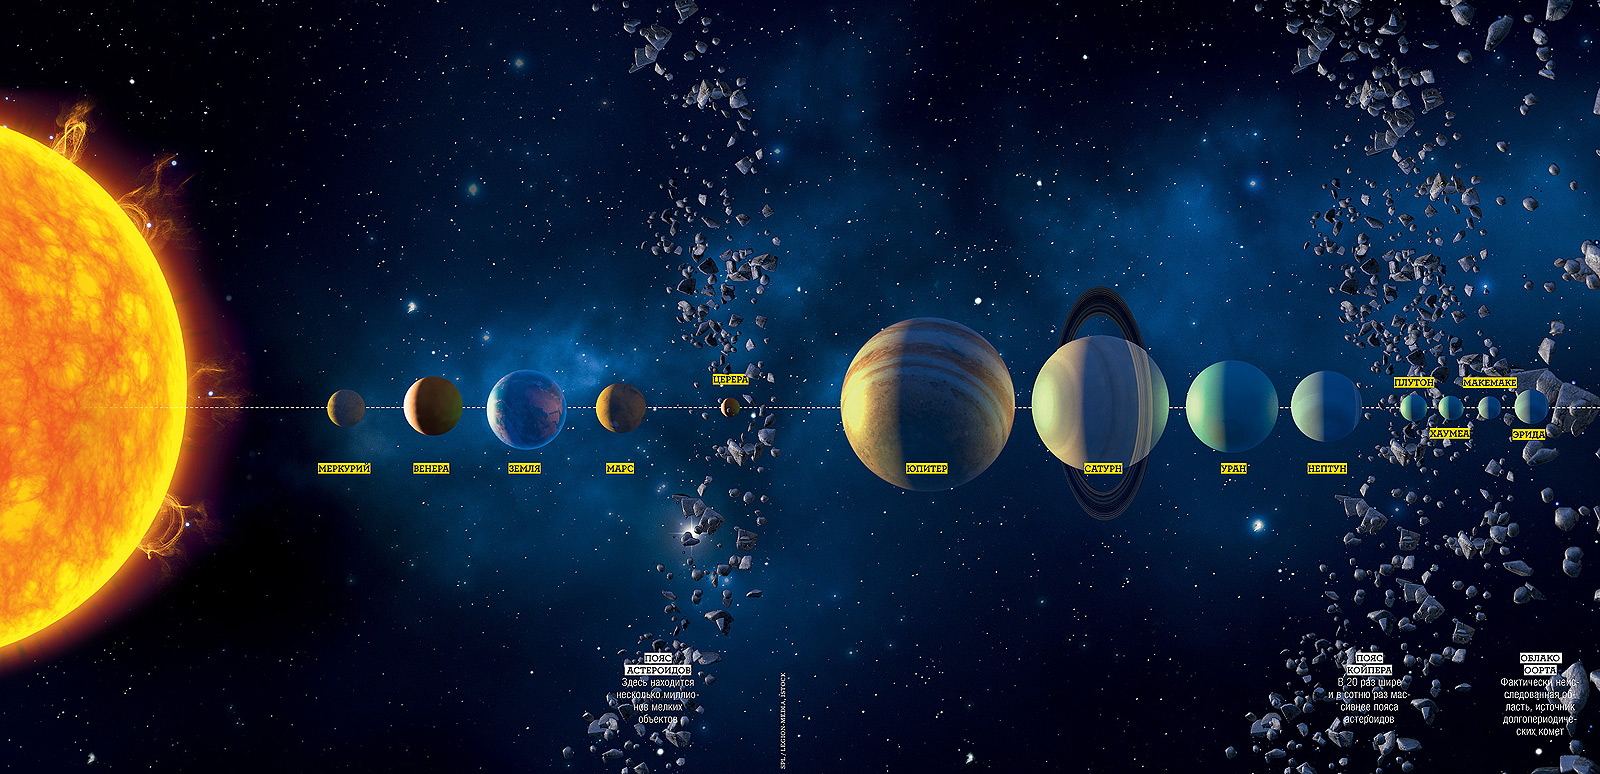 solar system images - 1200×580